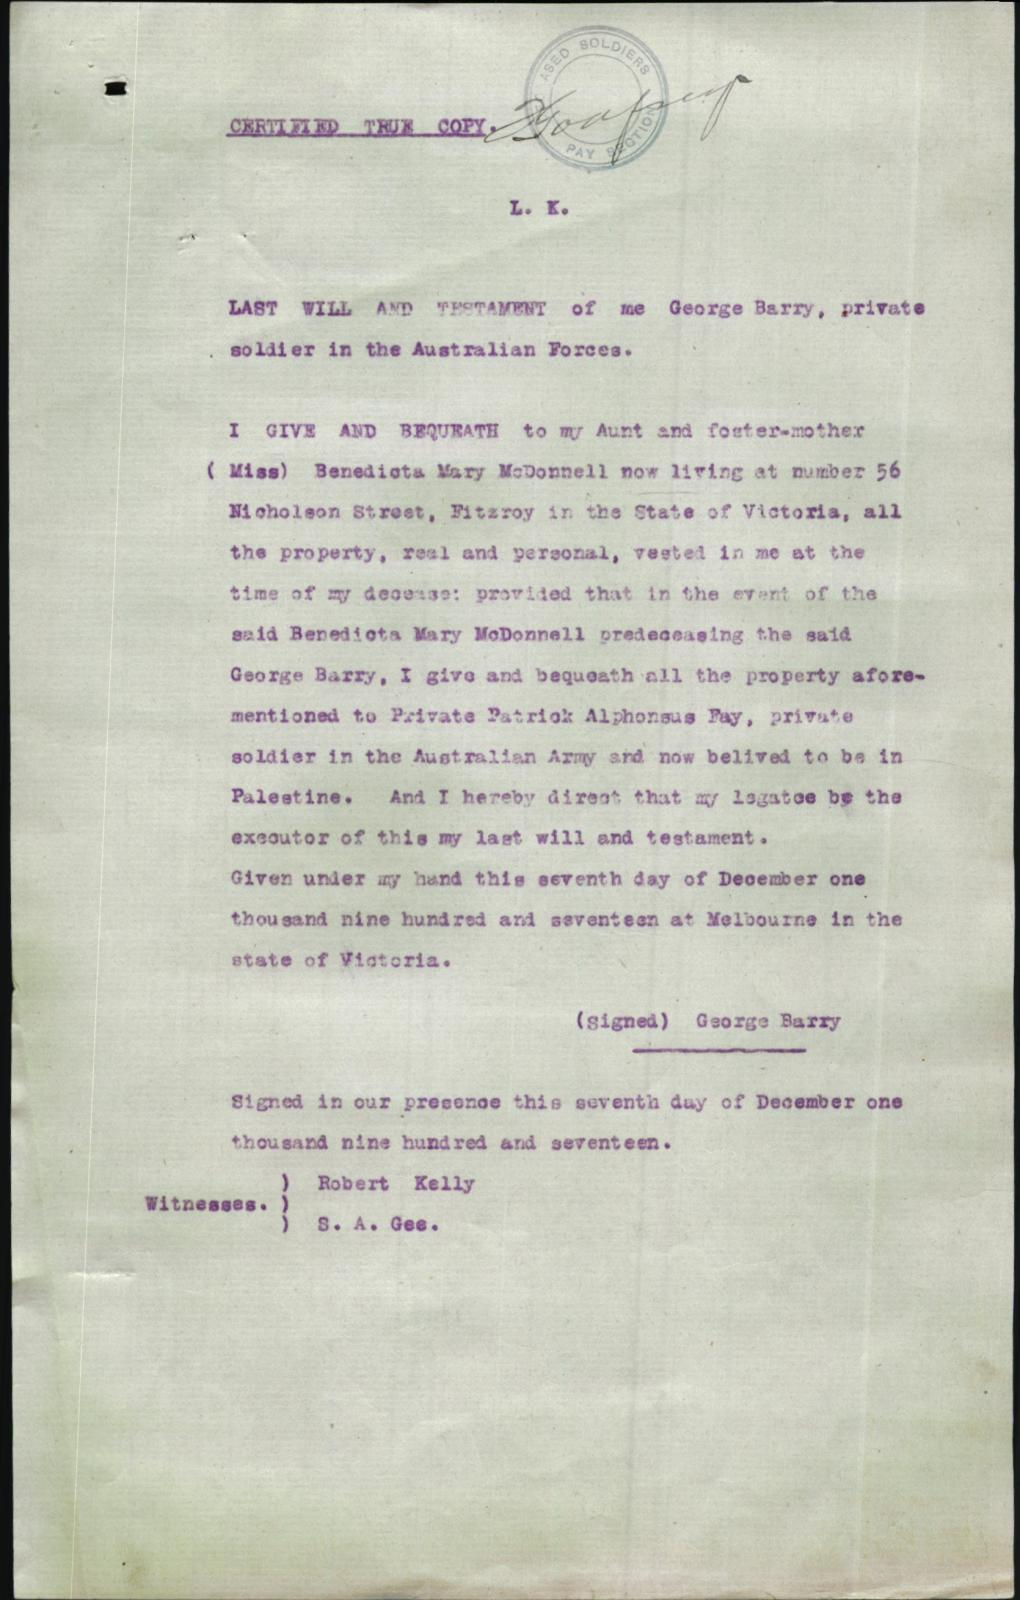 Last Will and Testament - 1917-12-07